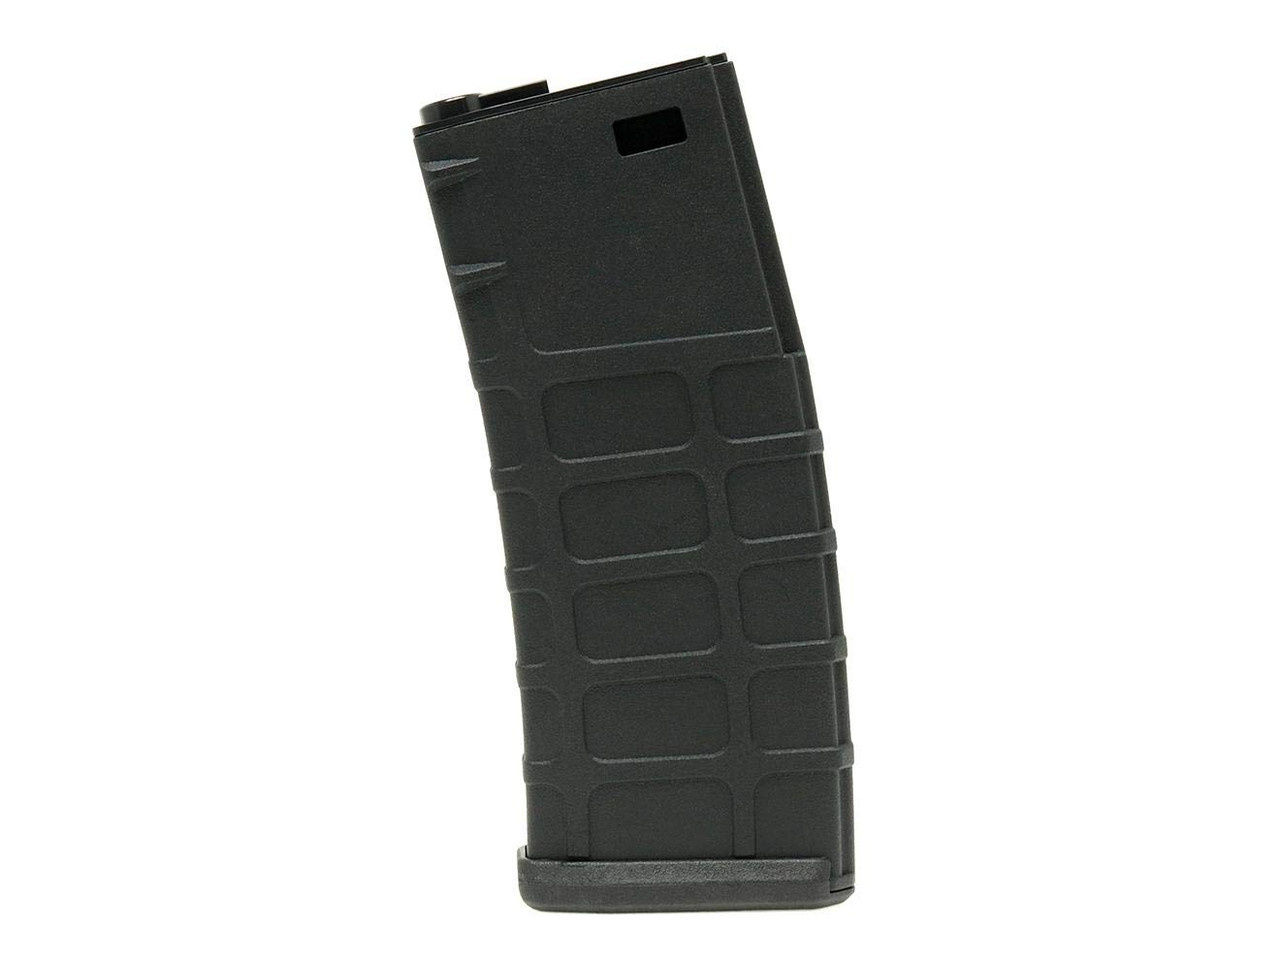 G&P 10 set of GMAG 340Rds magazine AEG M4 BK